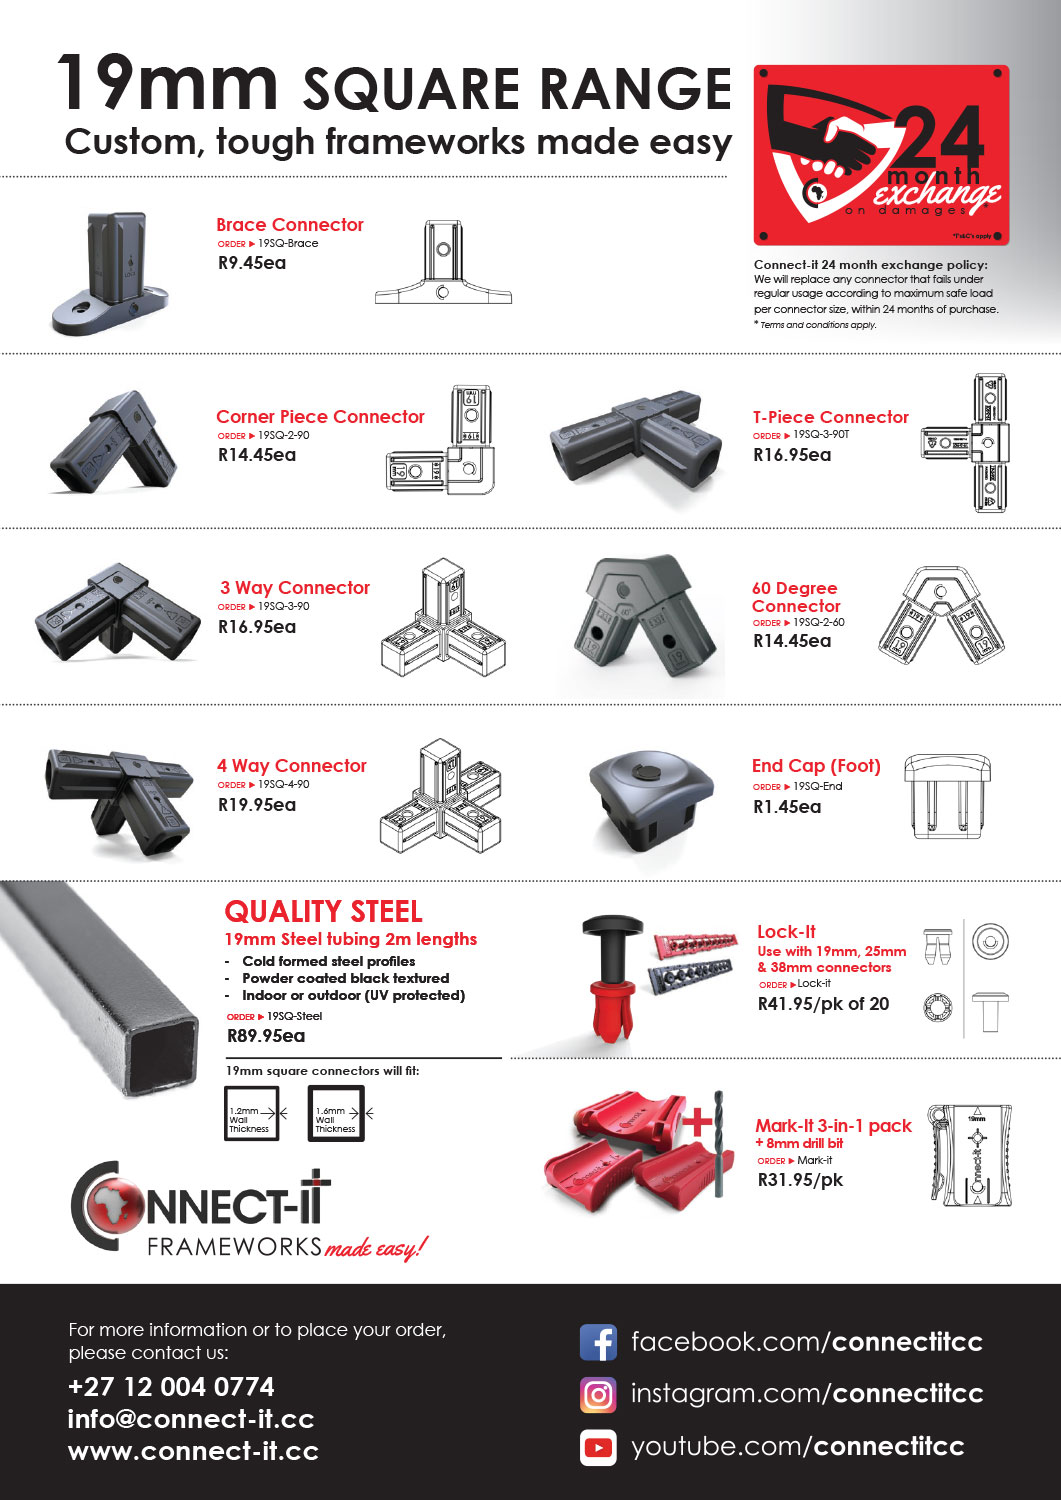 Connect-it | 2019 Price List and Catalogue | Frameworks made easy